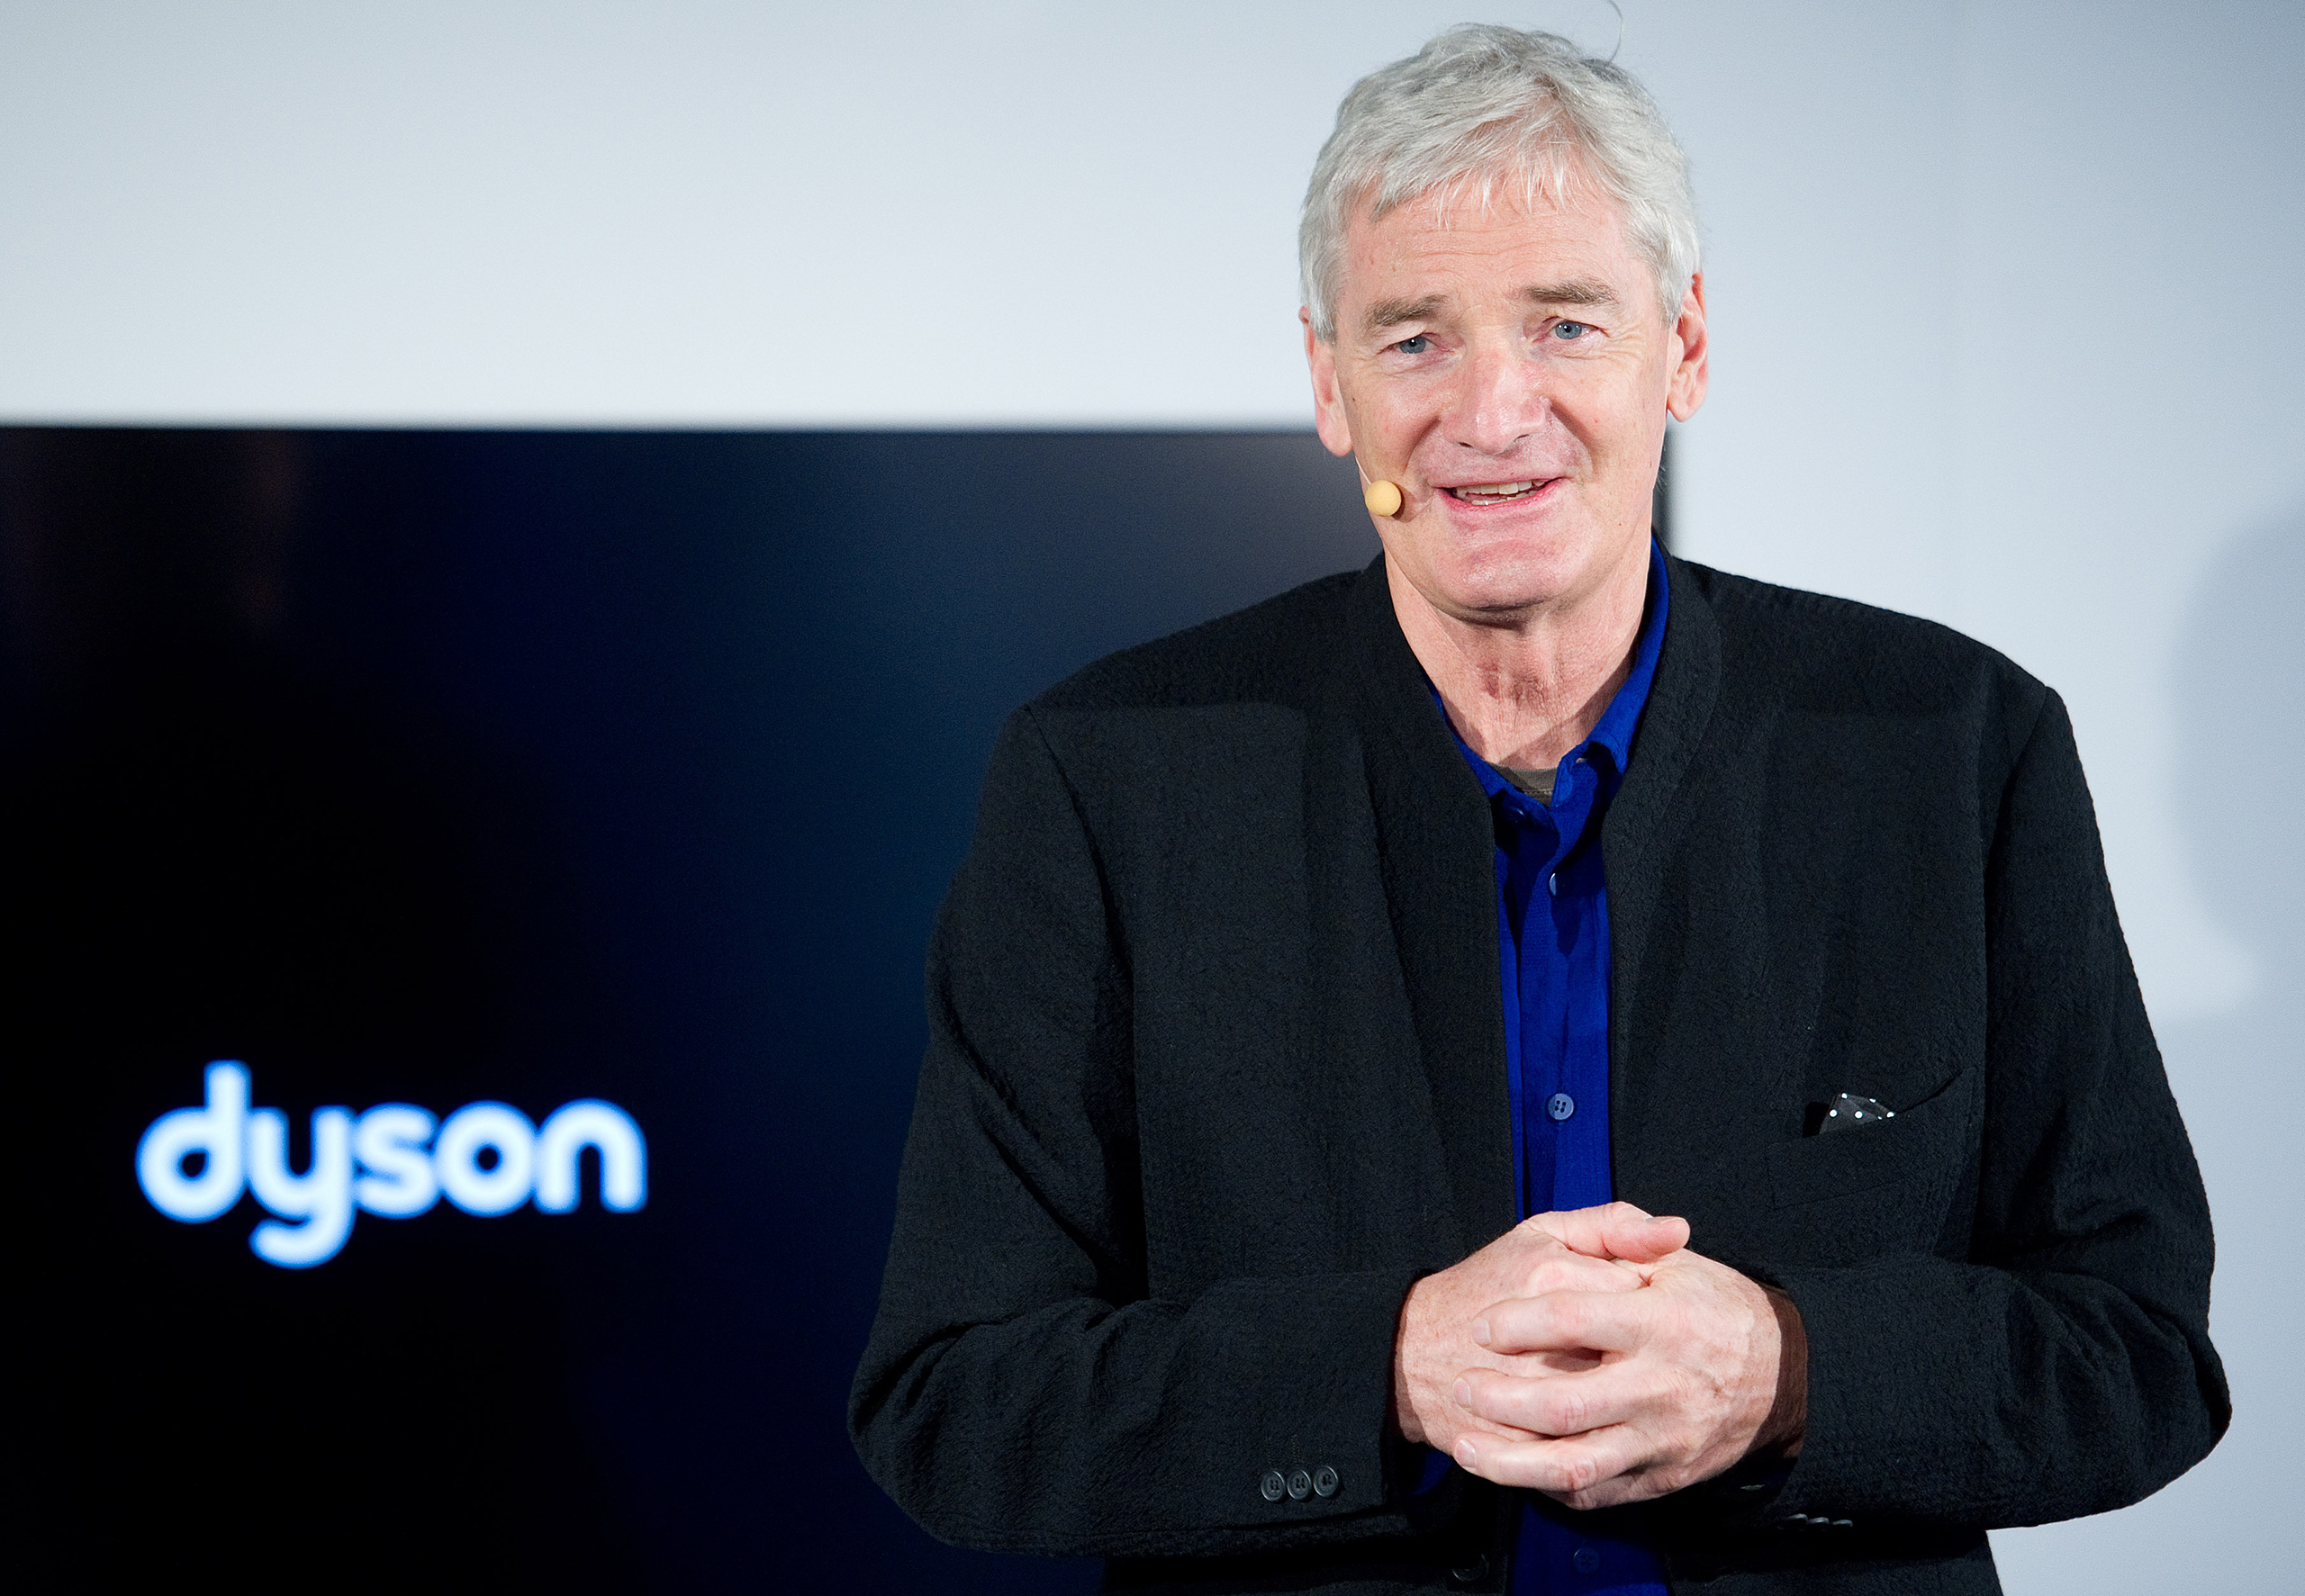 British entrepreneur and inventor James Dyson in Hamburg, Germany, 28 Feb. 2013.